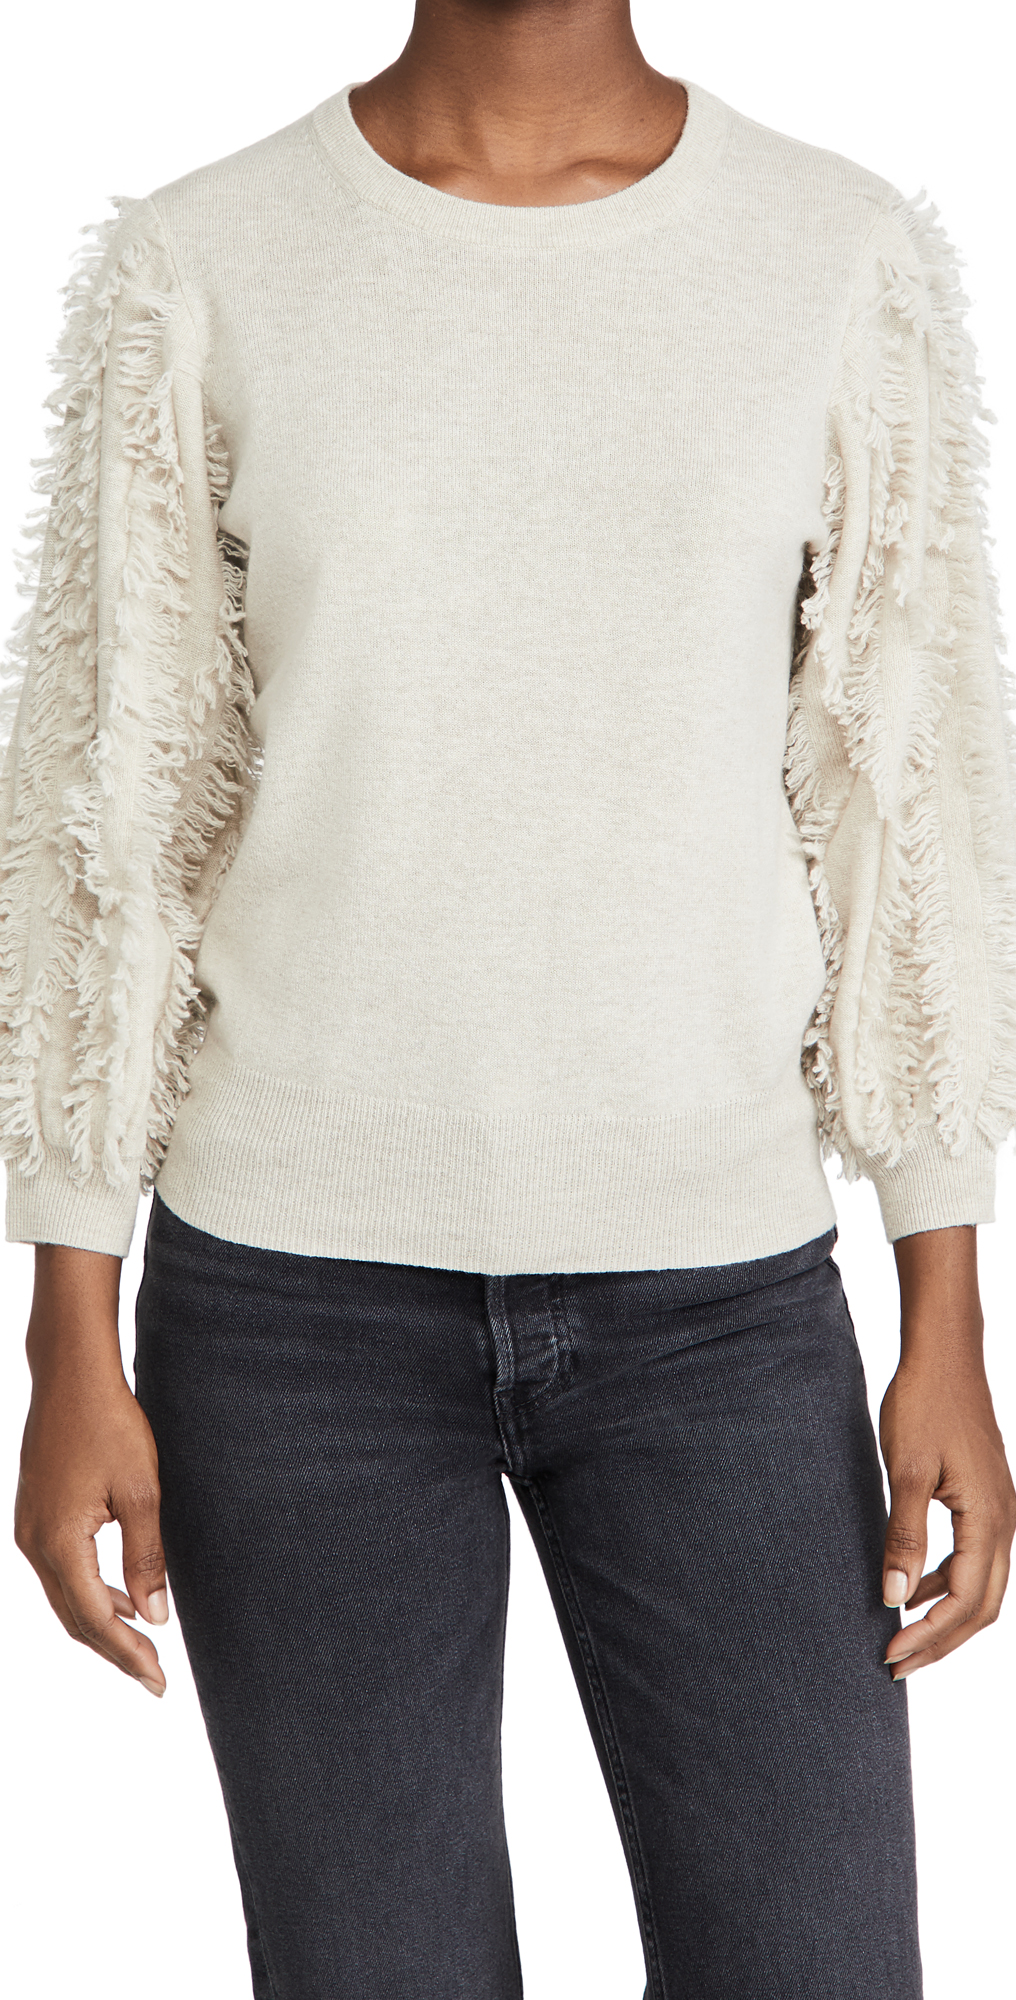 Autumn Cashmere Frayed Puffed Sleeve Cashmere Sweater